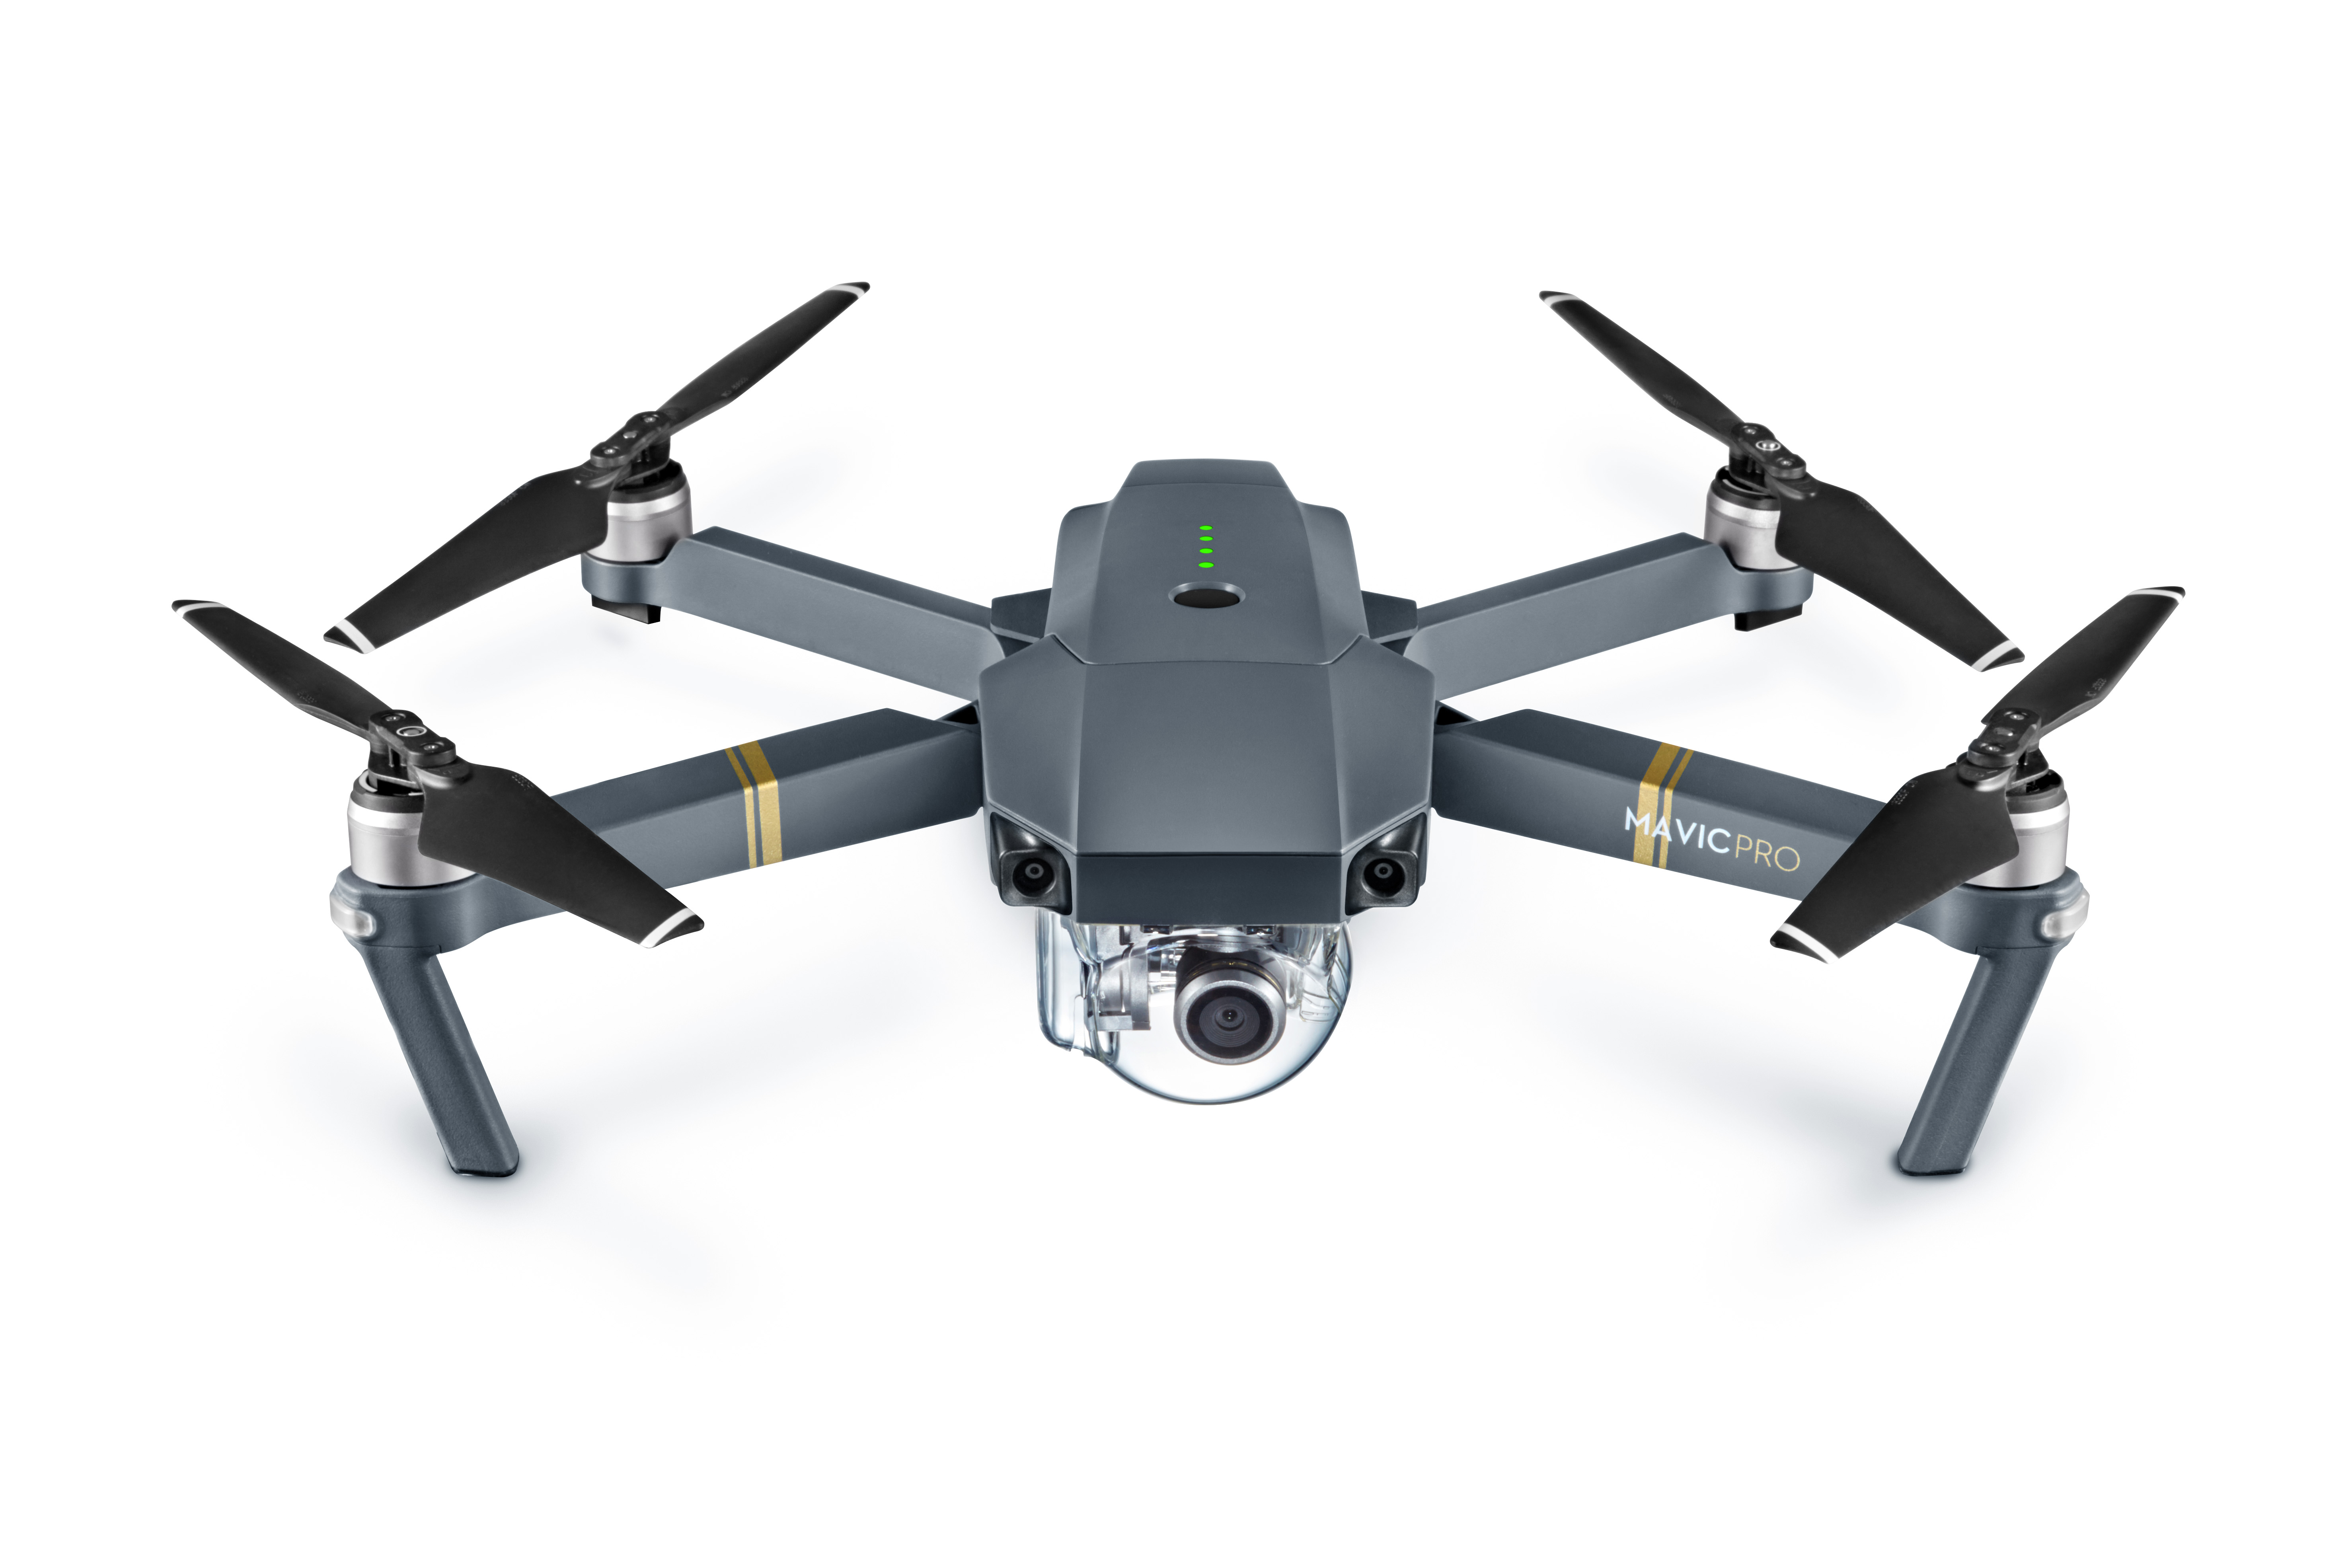 drones with camera and gps with 6380 on Gdu O2 Launched Dji Mavic Pro Features At A Lower Price moreover Dji Phantom 4 Quadcopter Drone With 4k Camera together with P Rm4352us besides Feiyutech G3 3 Axis Gimbal For Gopro3 P 41792 likewise Drones.